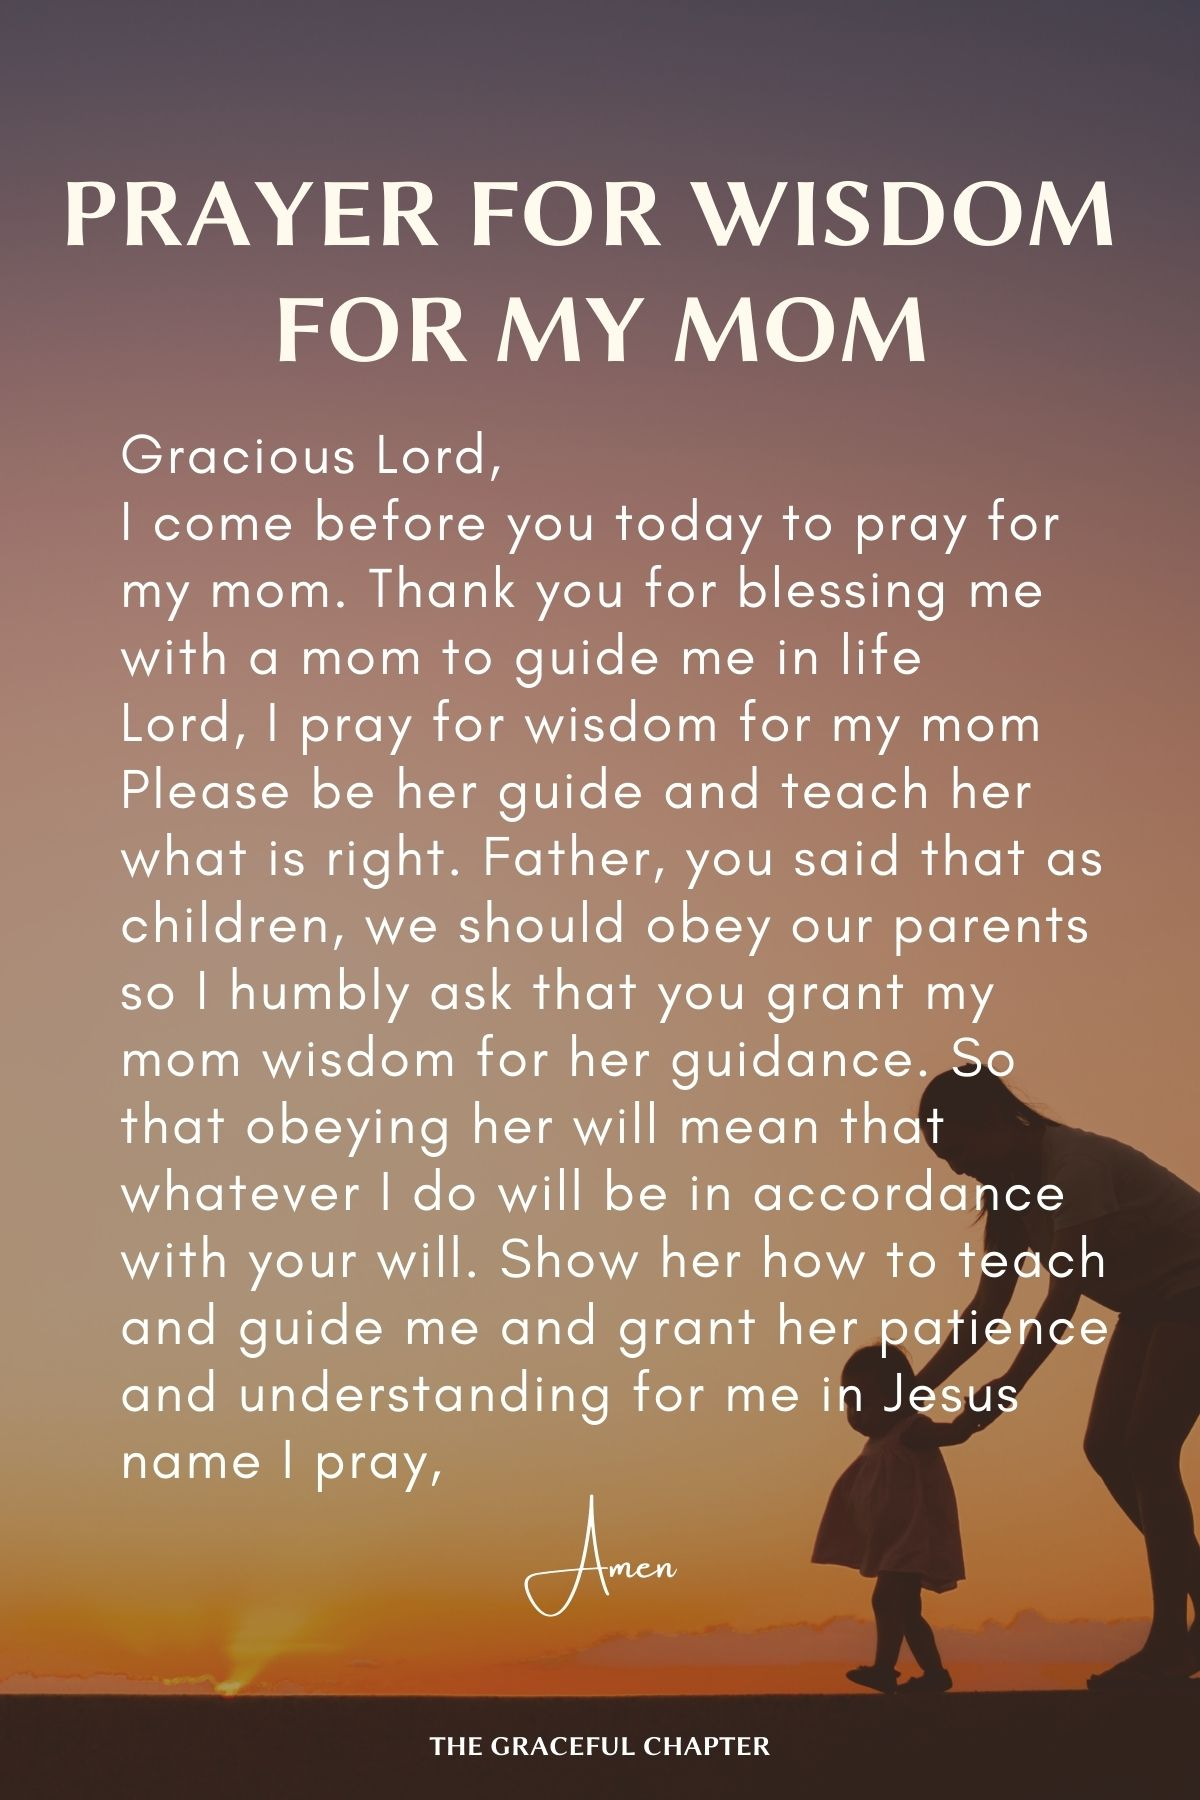 Gracious Lord, I come before you today to pray for my mom Thank you for blessing me with a mom to guide me in life Lord, I pray for wisdom for my mom Please be her guide and teach her what is right Father, you said that as children, we should our parents So I humbly ask that you grant my mom wisdom for her guidance So that obeying her will mean that whatever I do will be in accordance with your will Show her how to teach and guide me And grant her patience and understanding for me in Jesus name I pray, Amen